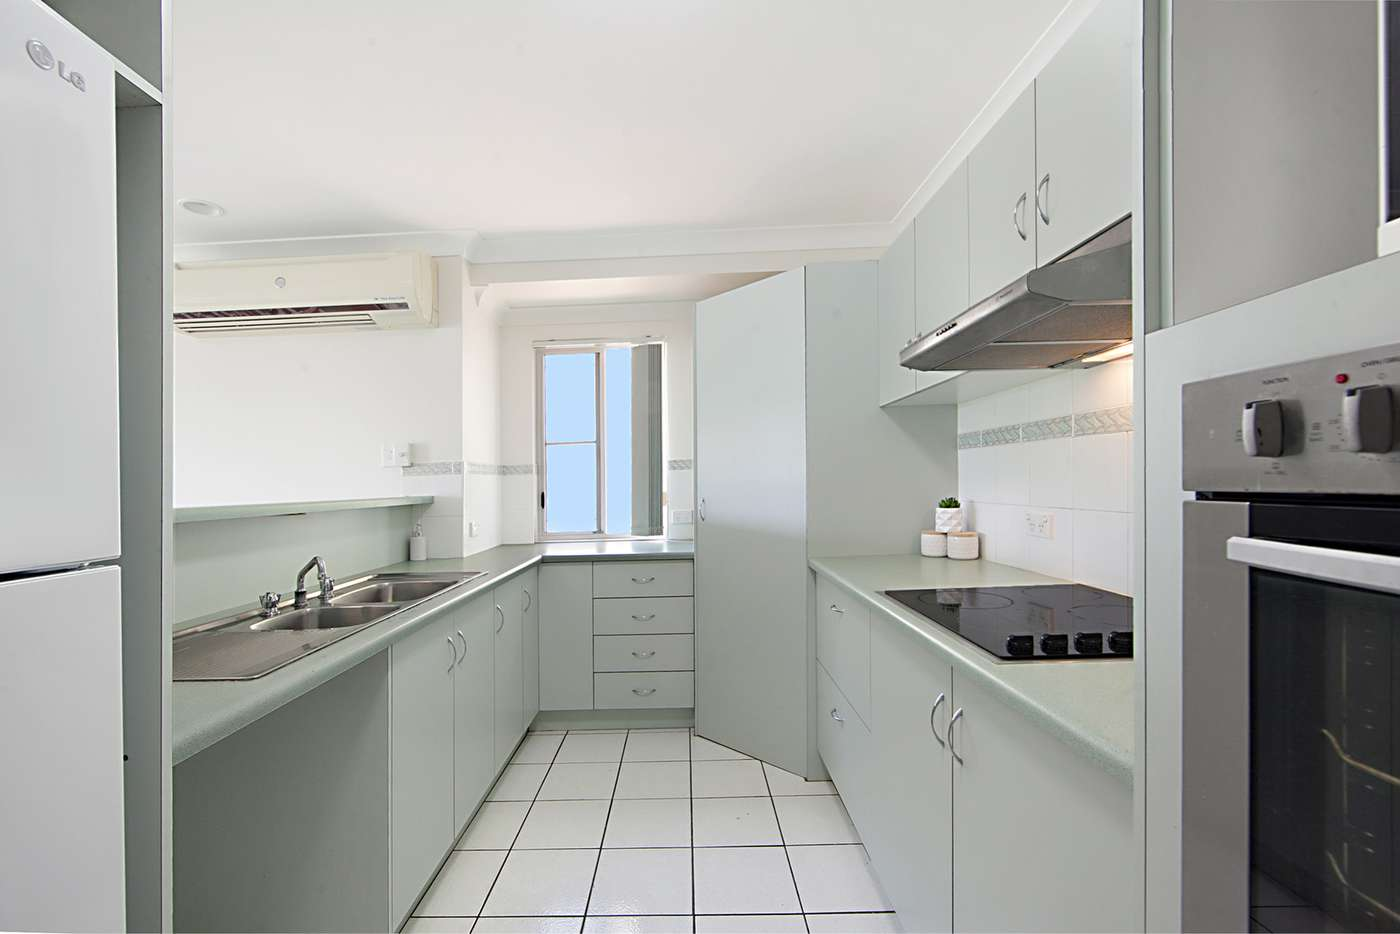 Sixth view of Homely apartment listing, 1/130 Eyre Street, North Ward QLD 4810